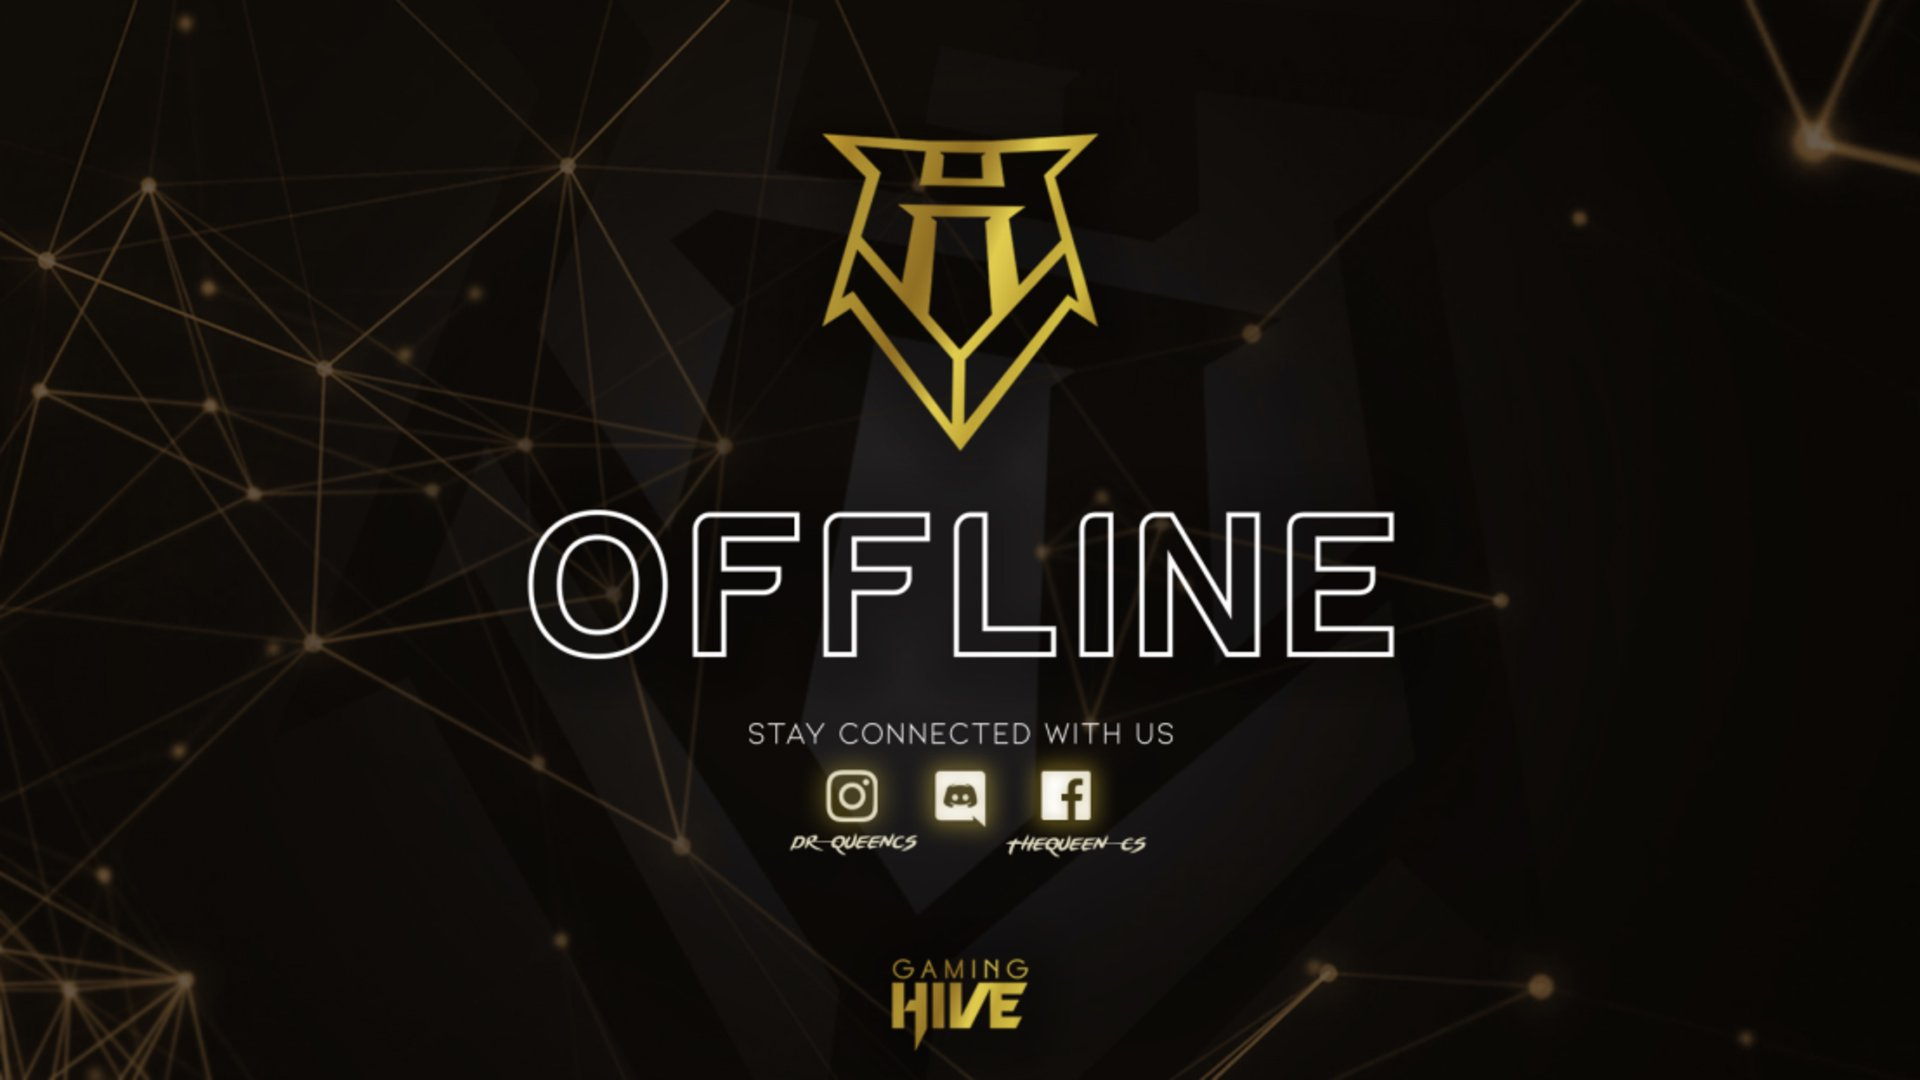 Twitch stream of Dr_Queen